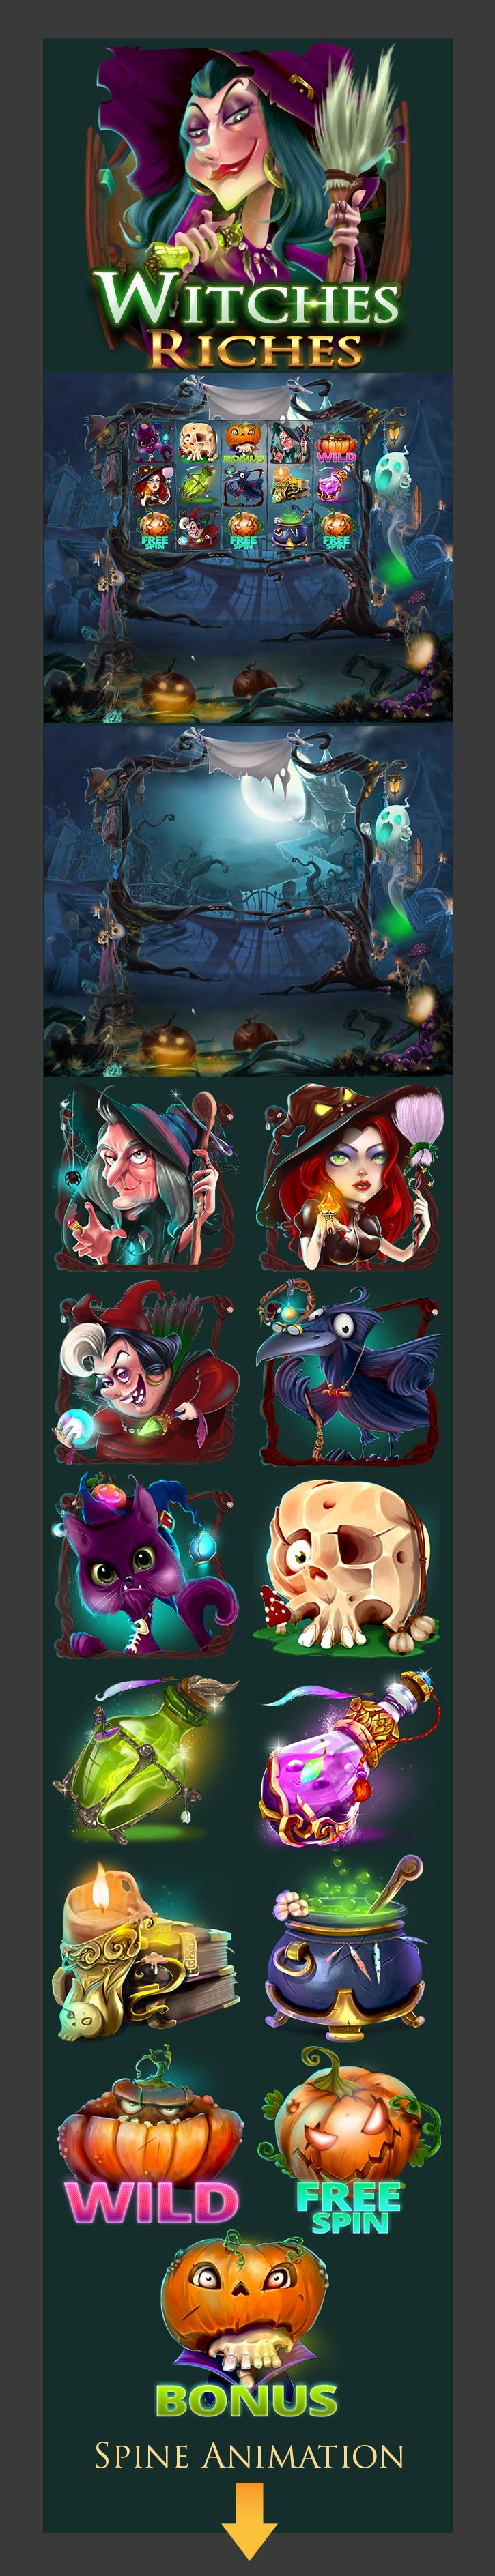 Slot machine,Casino mobile game art,Witches-Riches on Behance